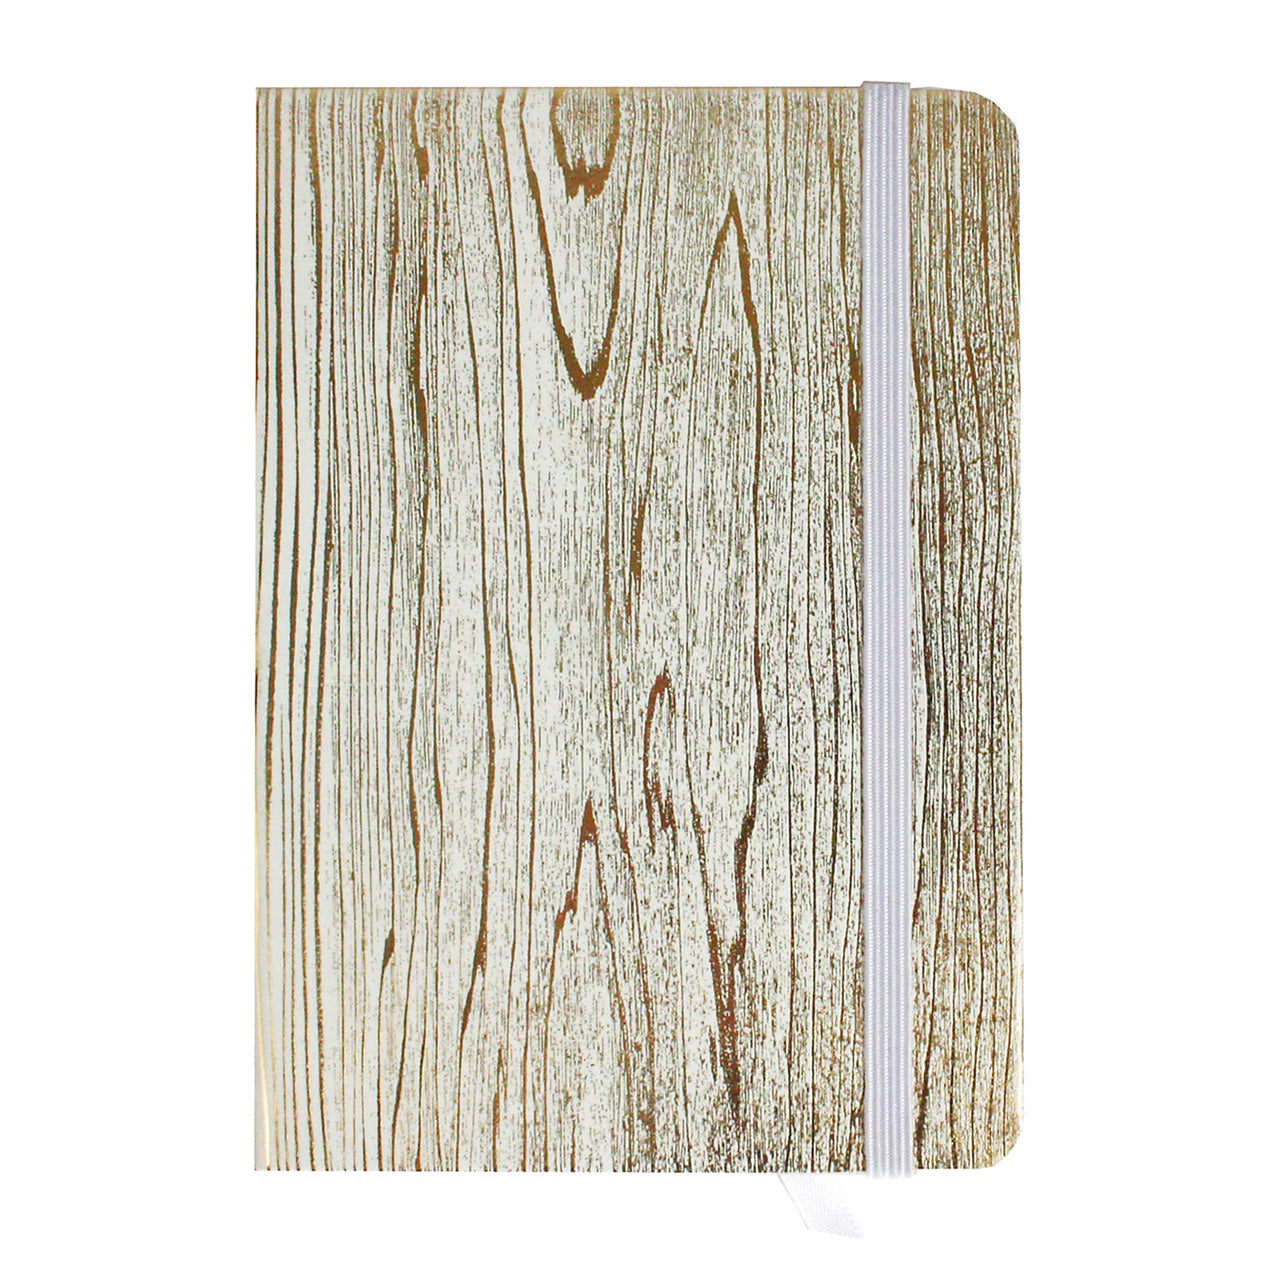 A6 Wood Effect Notebook - Metallic Gold